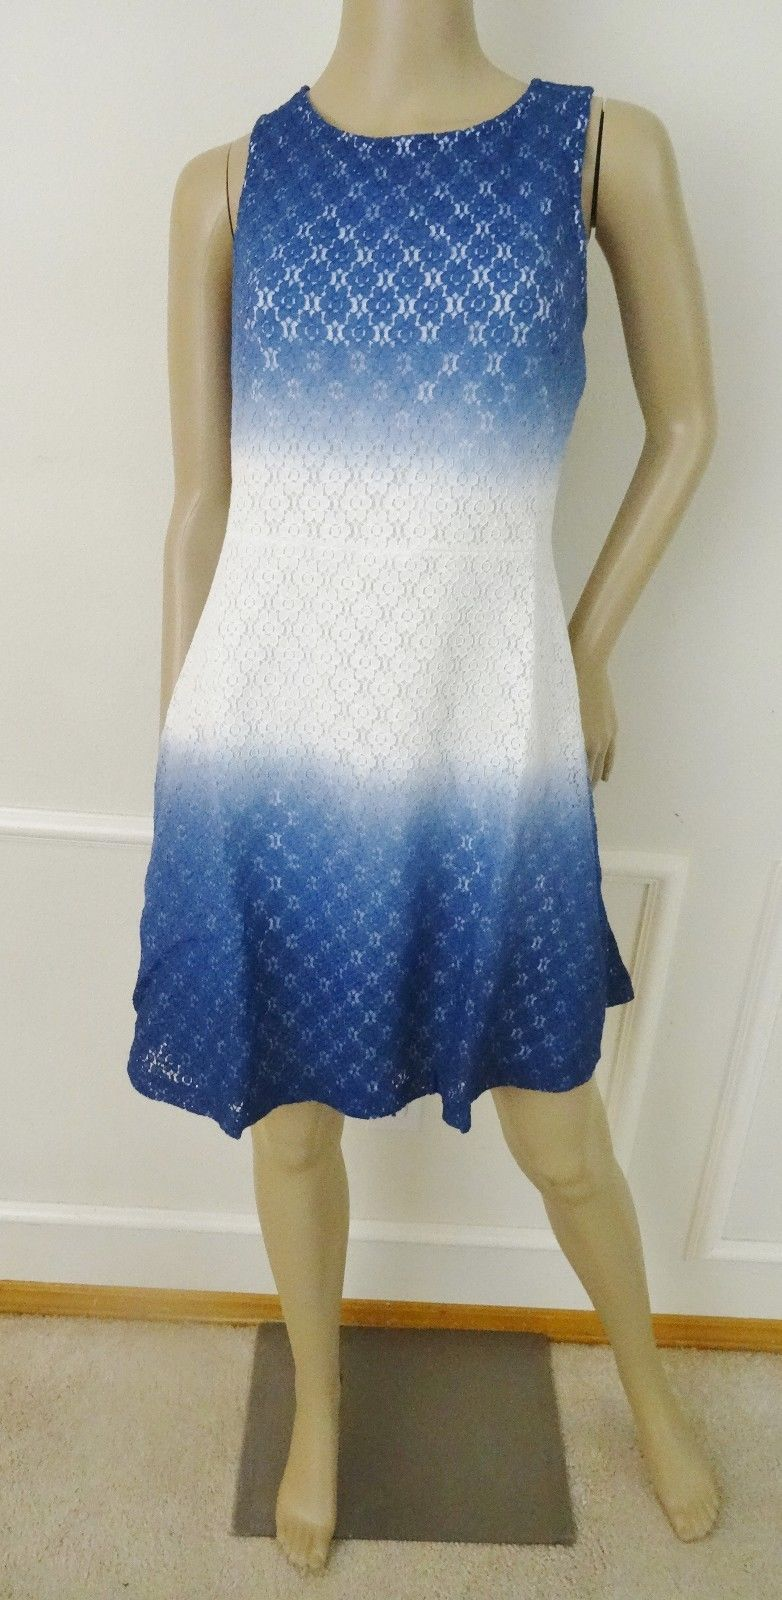 Nwt ECI New York Stretch Lace Overlay Fit & Flare Dress Sz 10 Blue Ivory Ombre